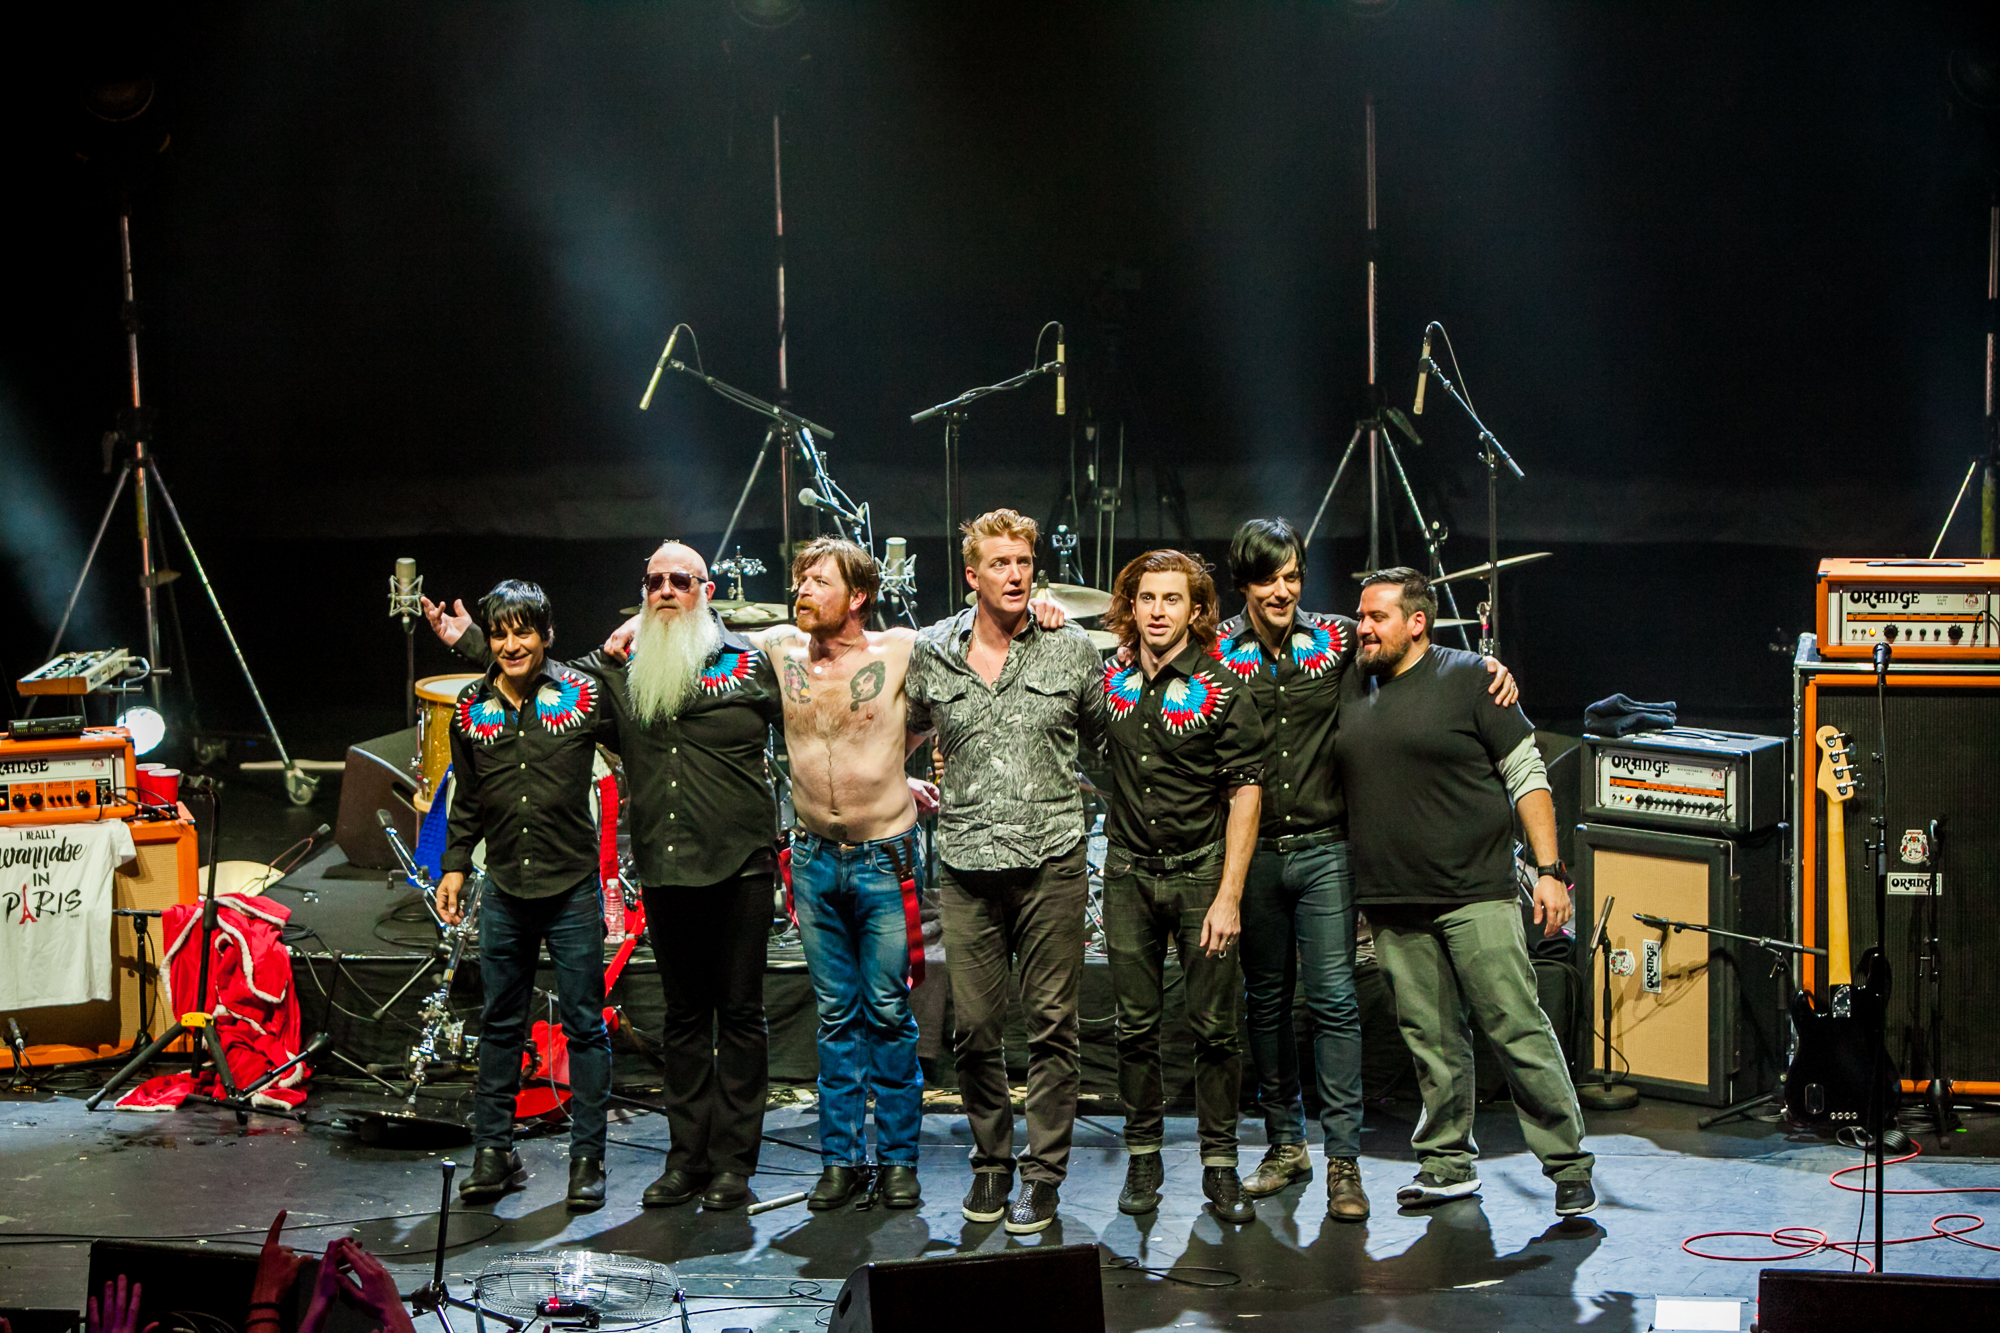 Eagles of Death Metal's return to Paris